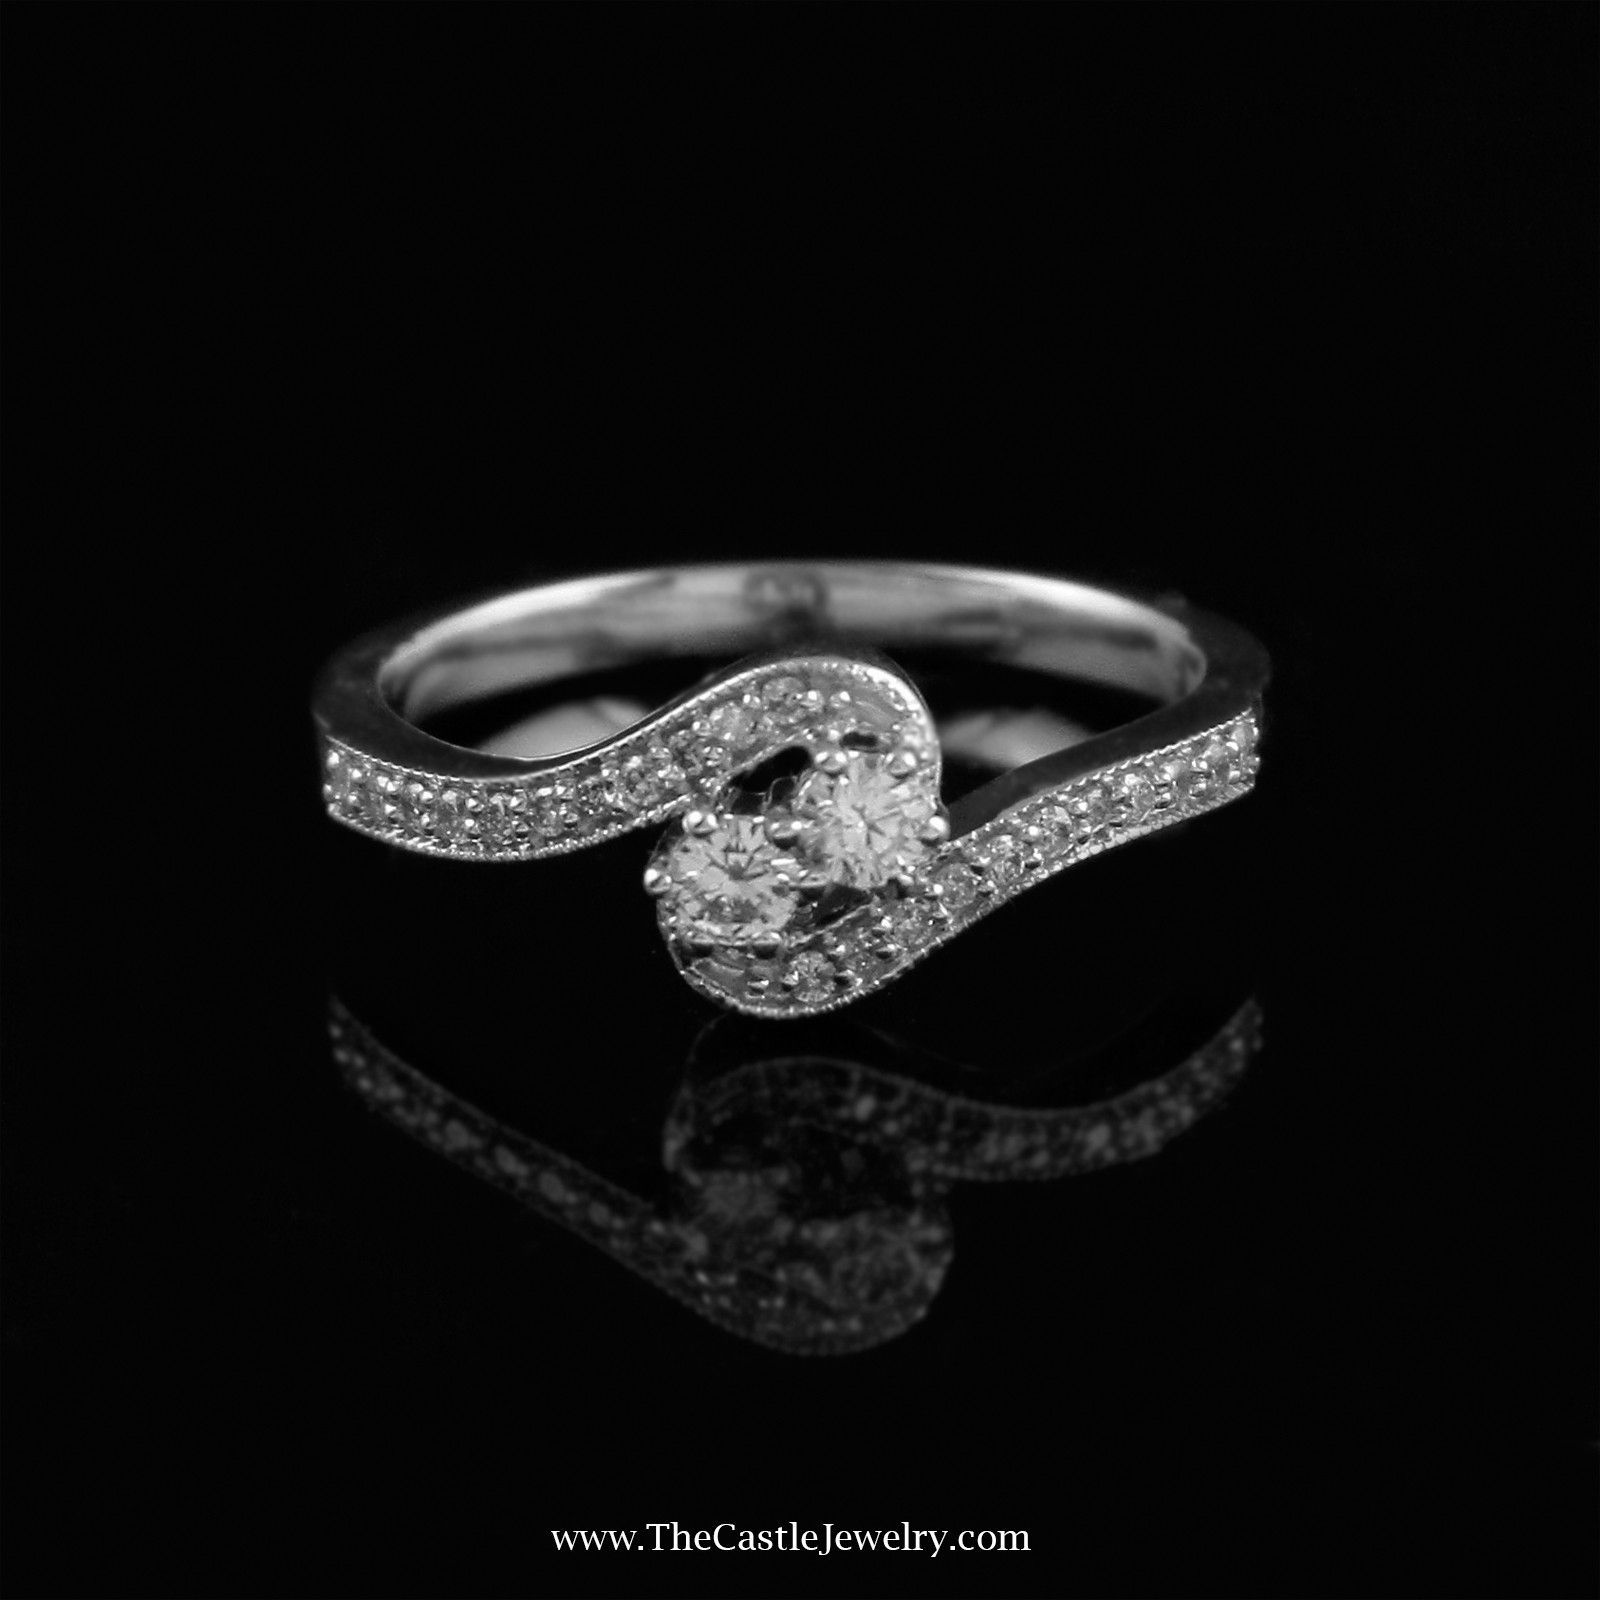 Mytrue Love My Best Friend 2 Round 25cttw Diamond Ring In 10k White Gold Engagement Rings White Gold Love My Best Friend